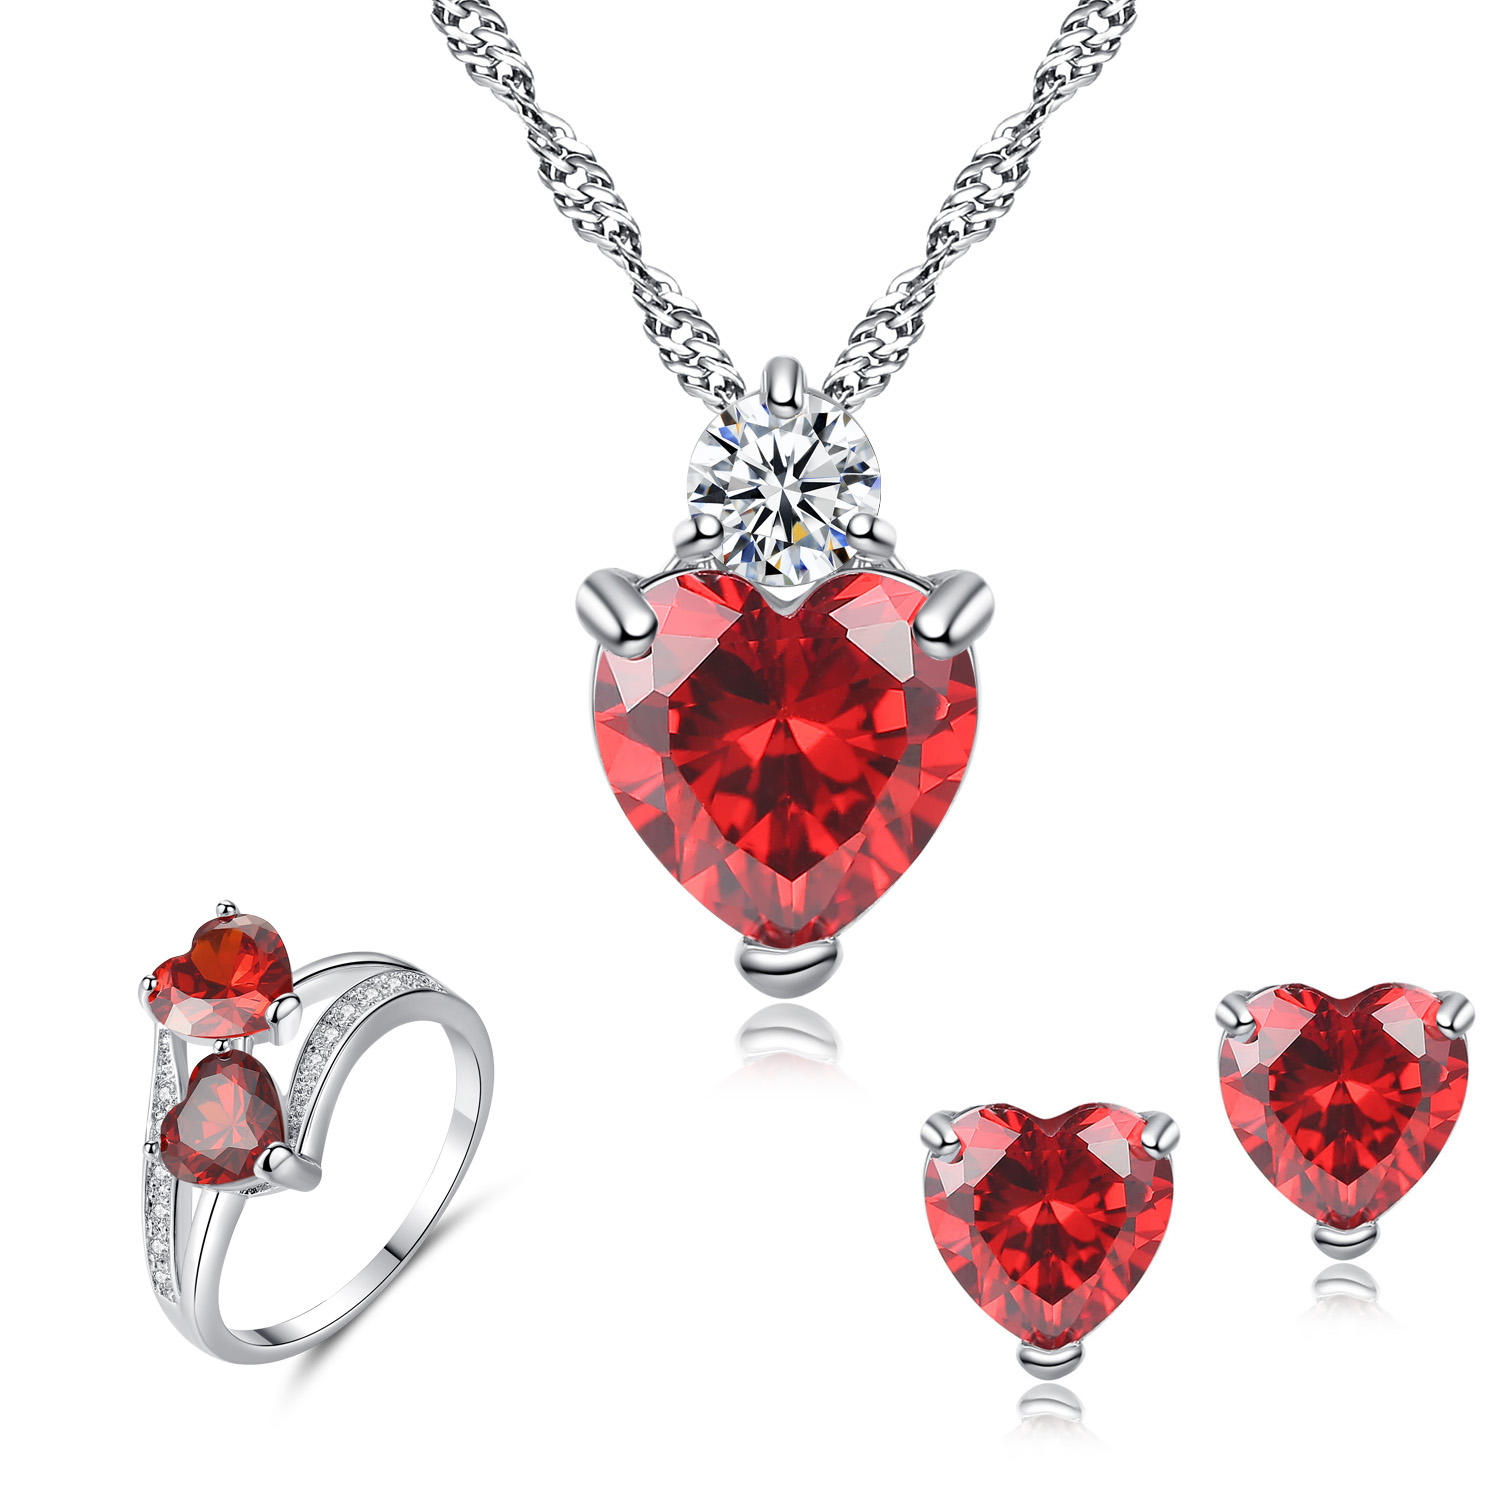 HPXmas Korean Red CZ Zircon Heart Ring Necklace And Earrings Wedding Fashion Jewelry Sets